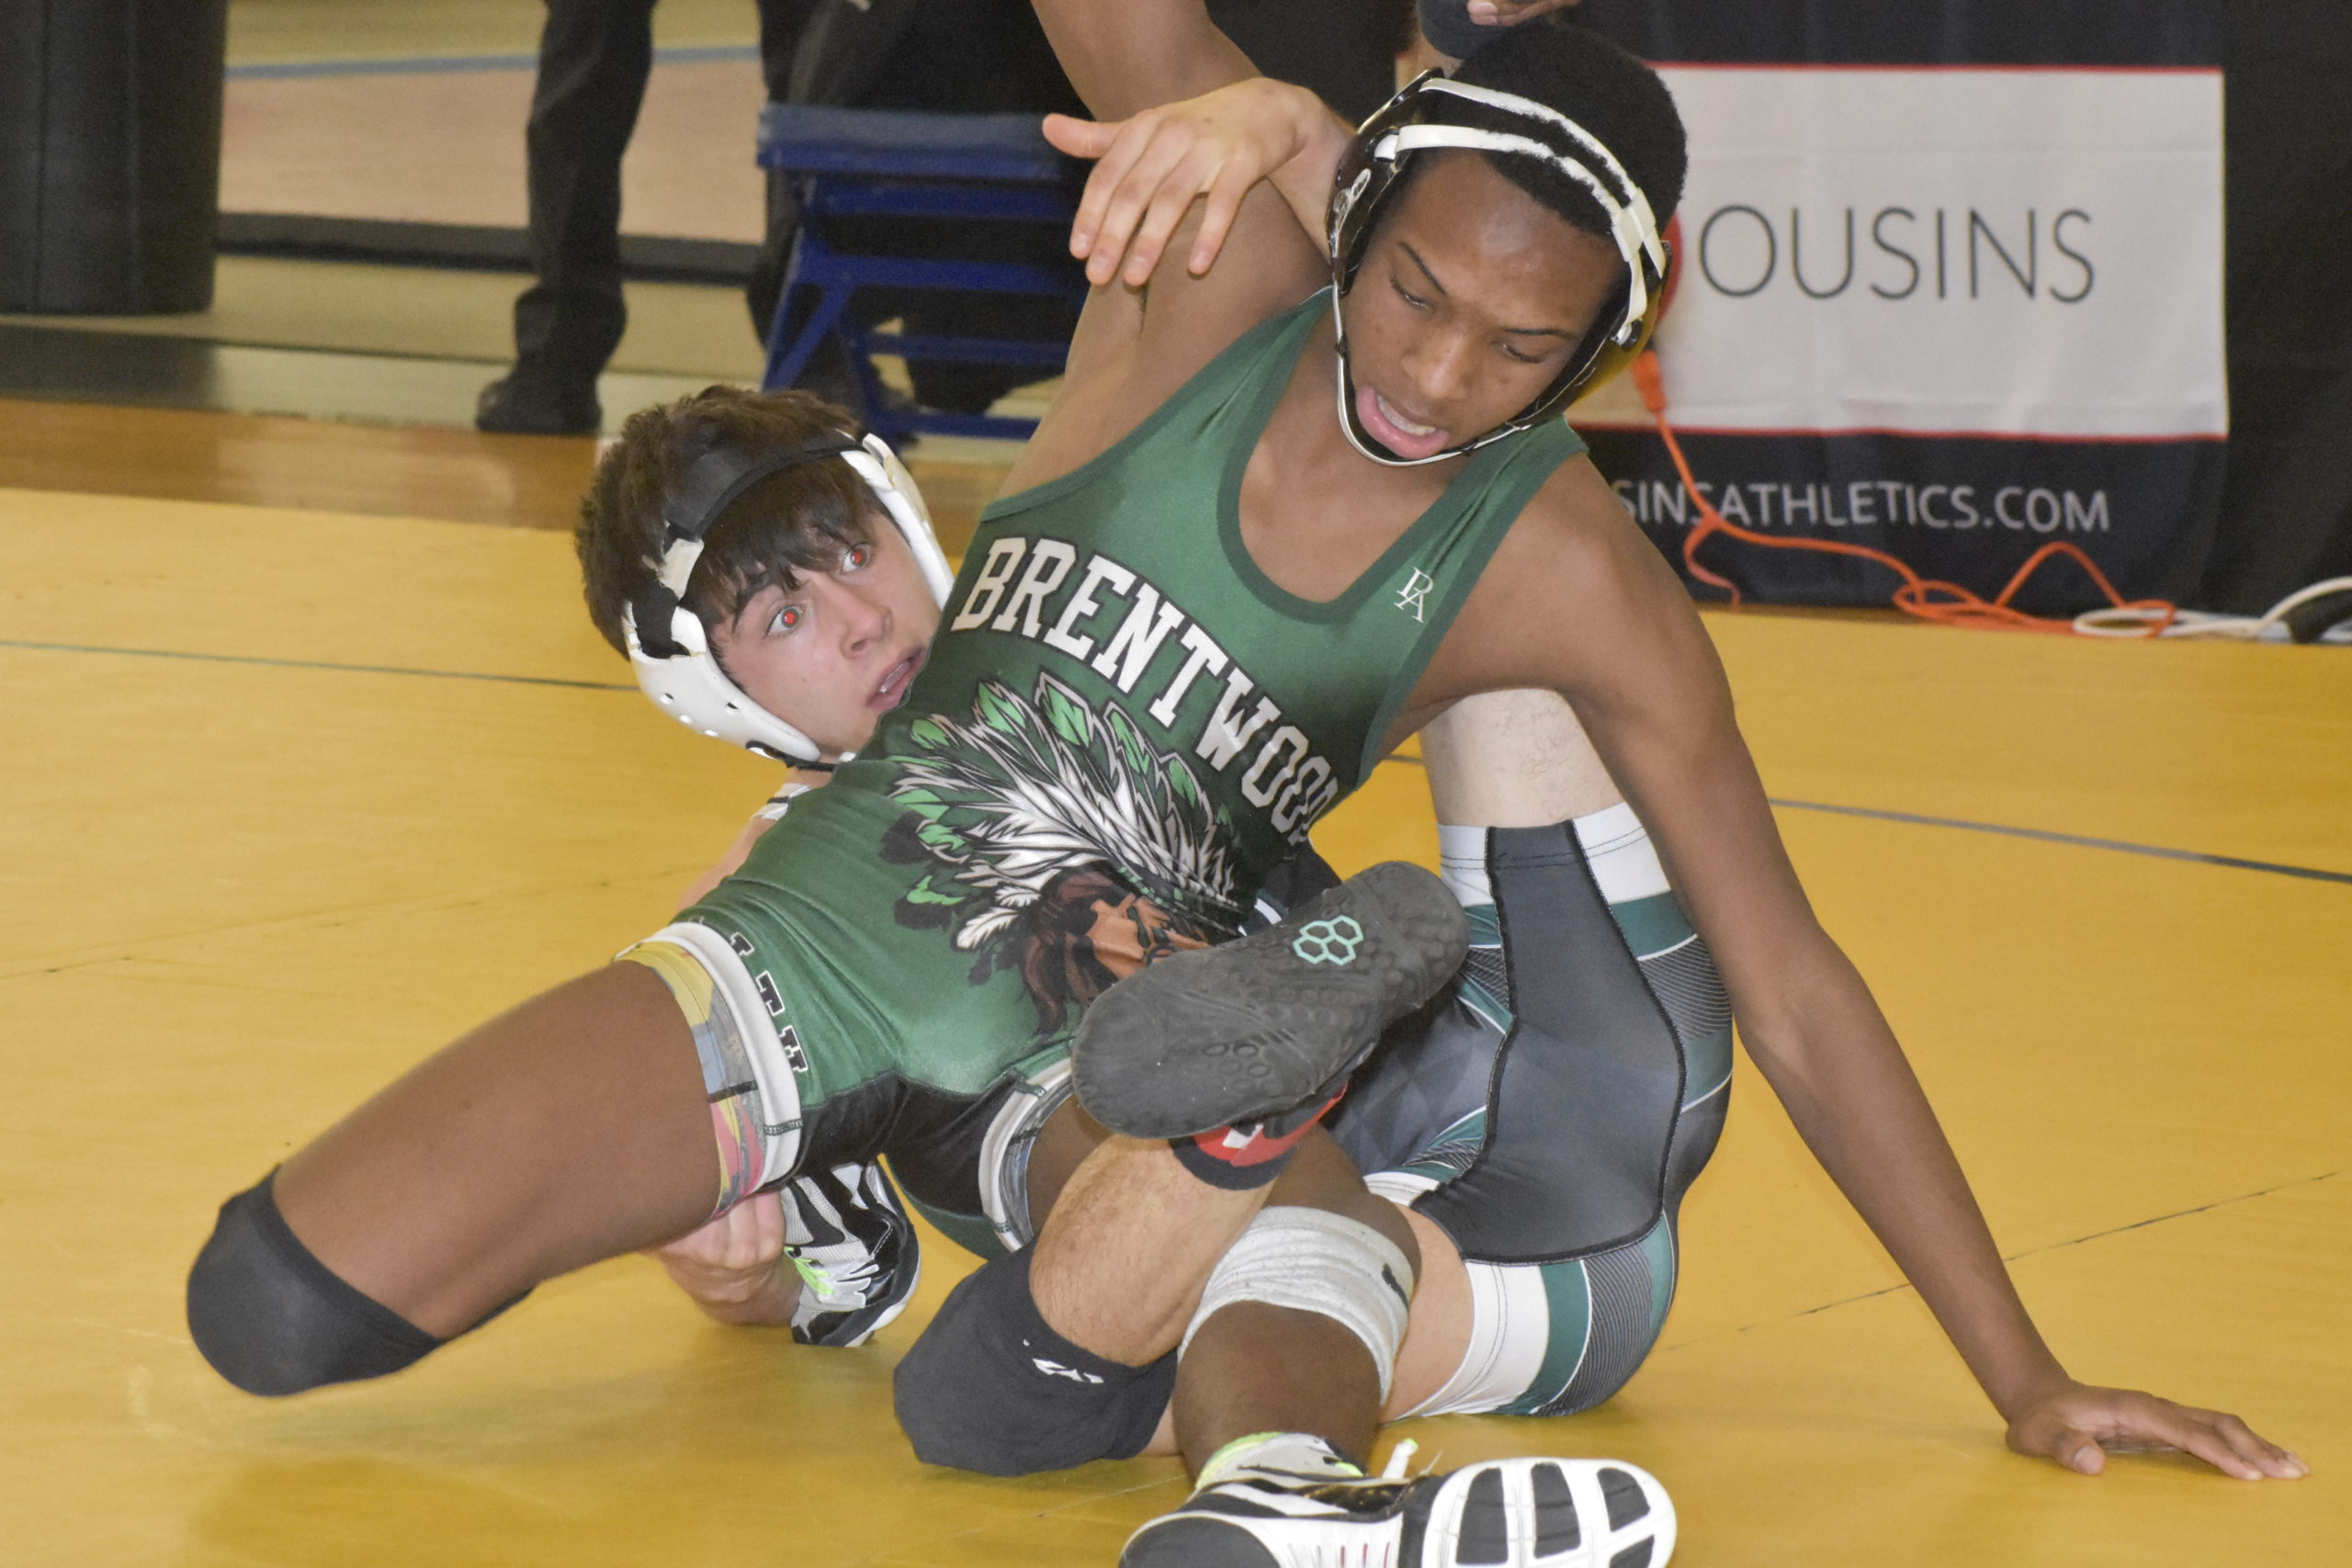 Will Zaffuto of Westhampton Beach tries to take down Devin Walker of Brentwood.